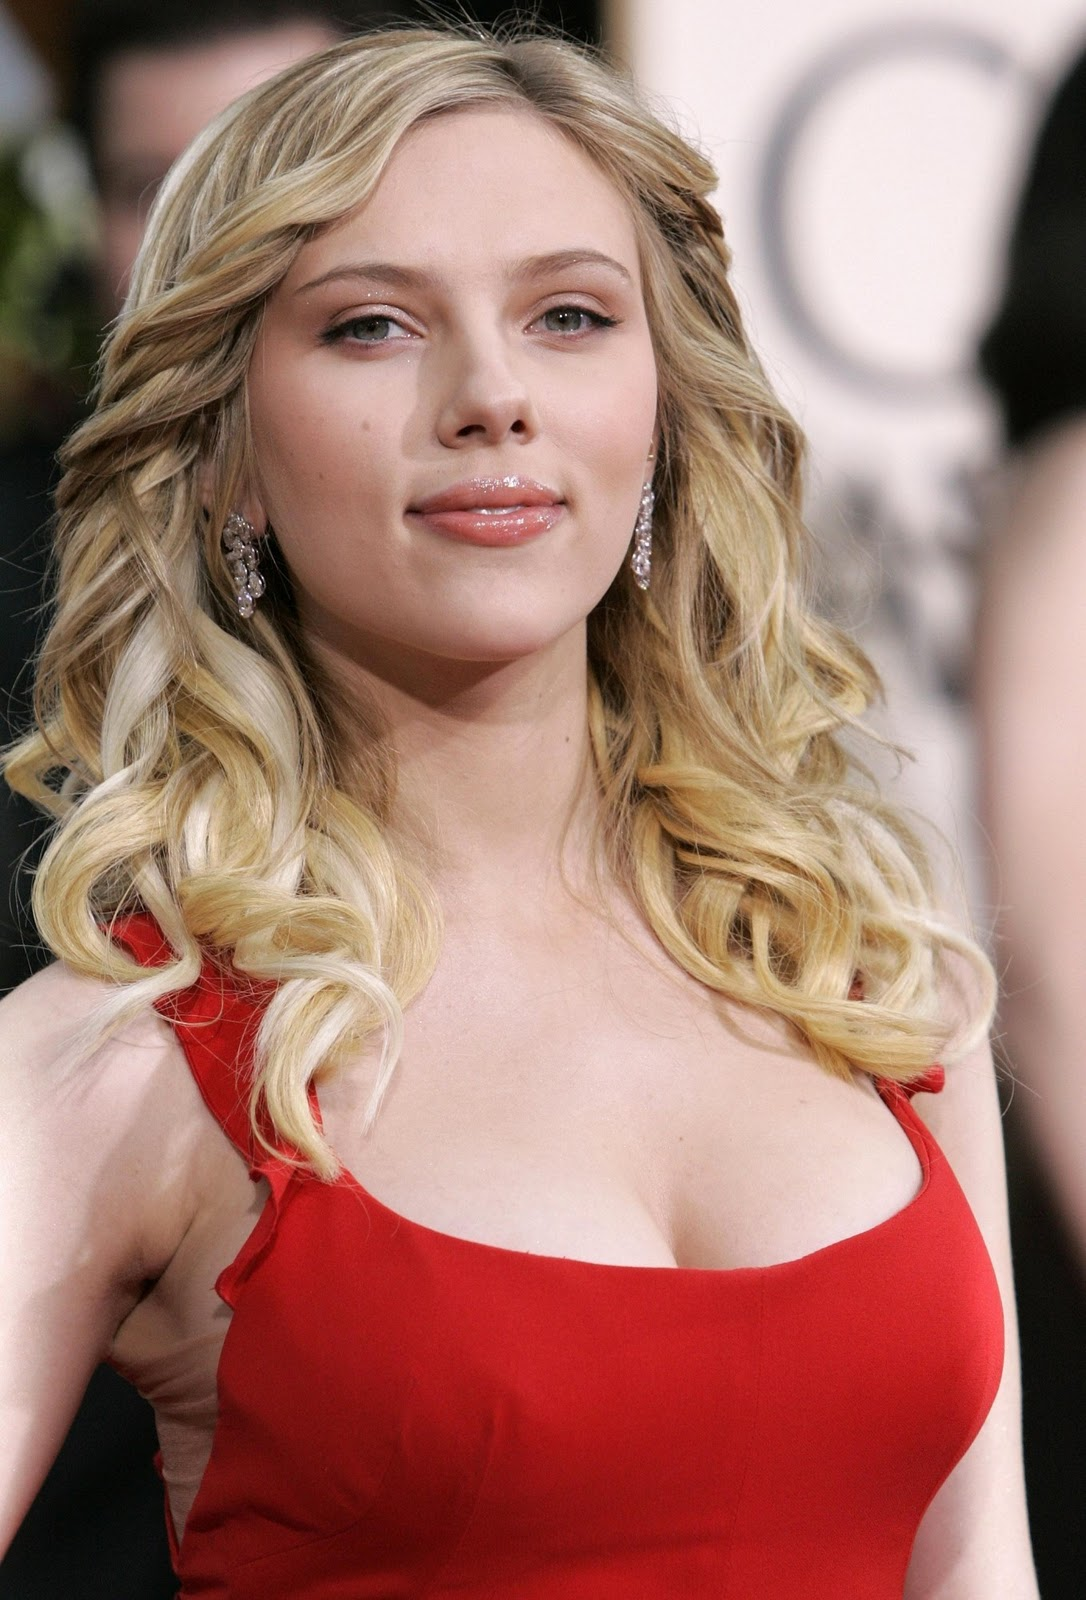 Scarlett Johansson cleavage exposed (2)